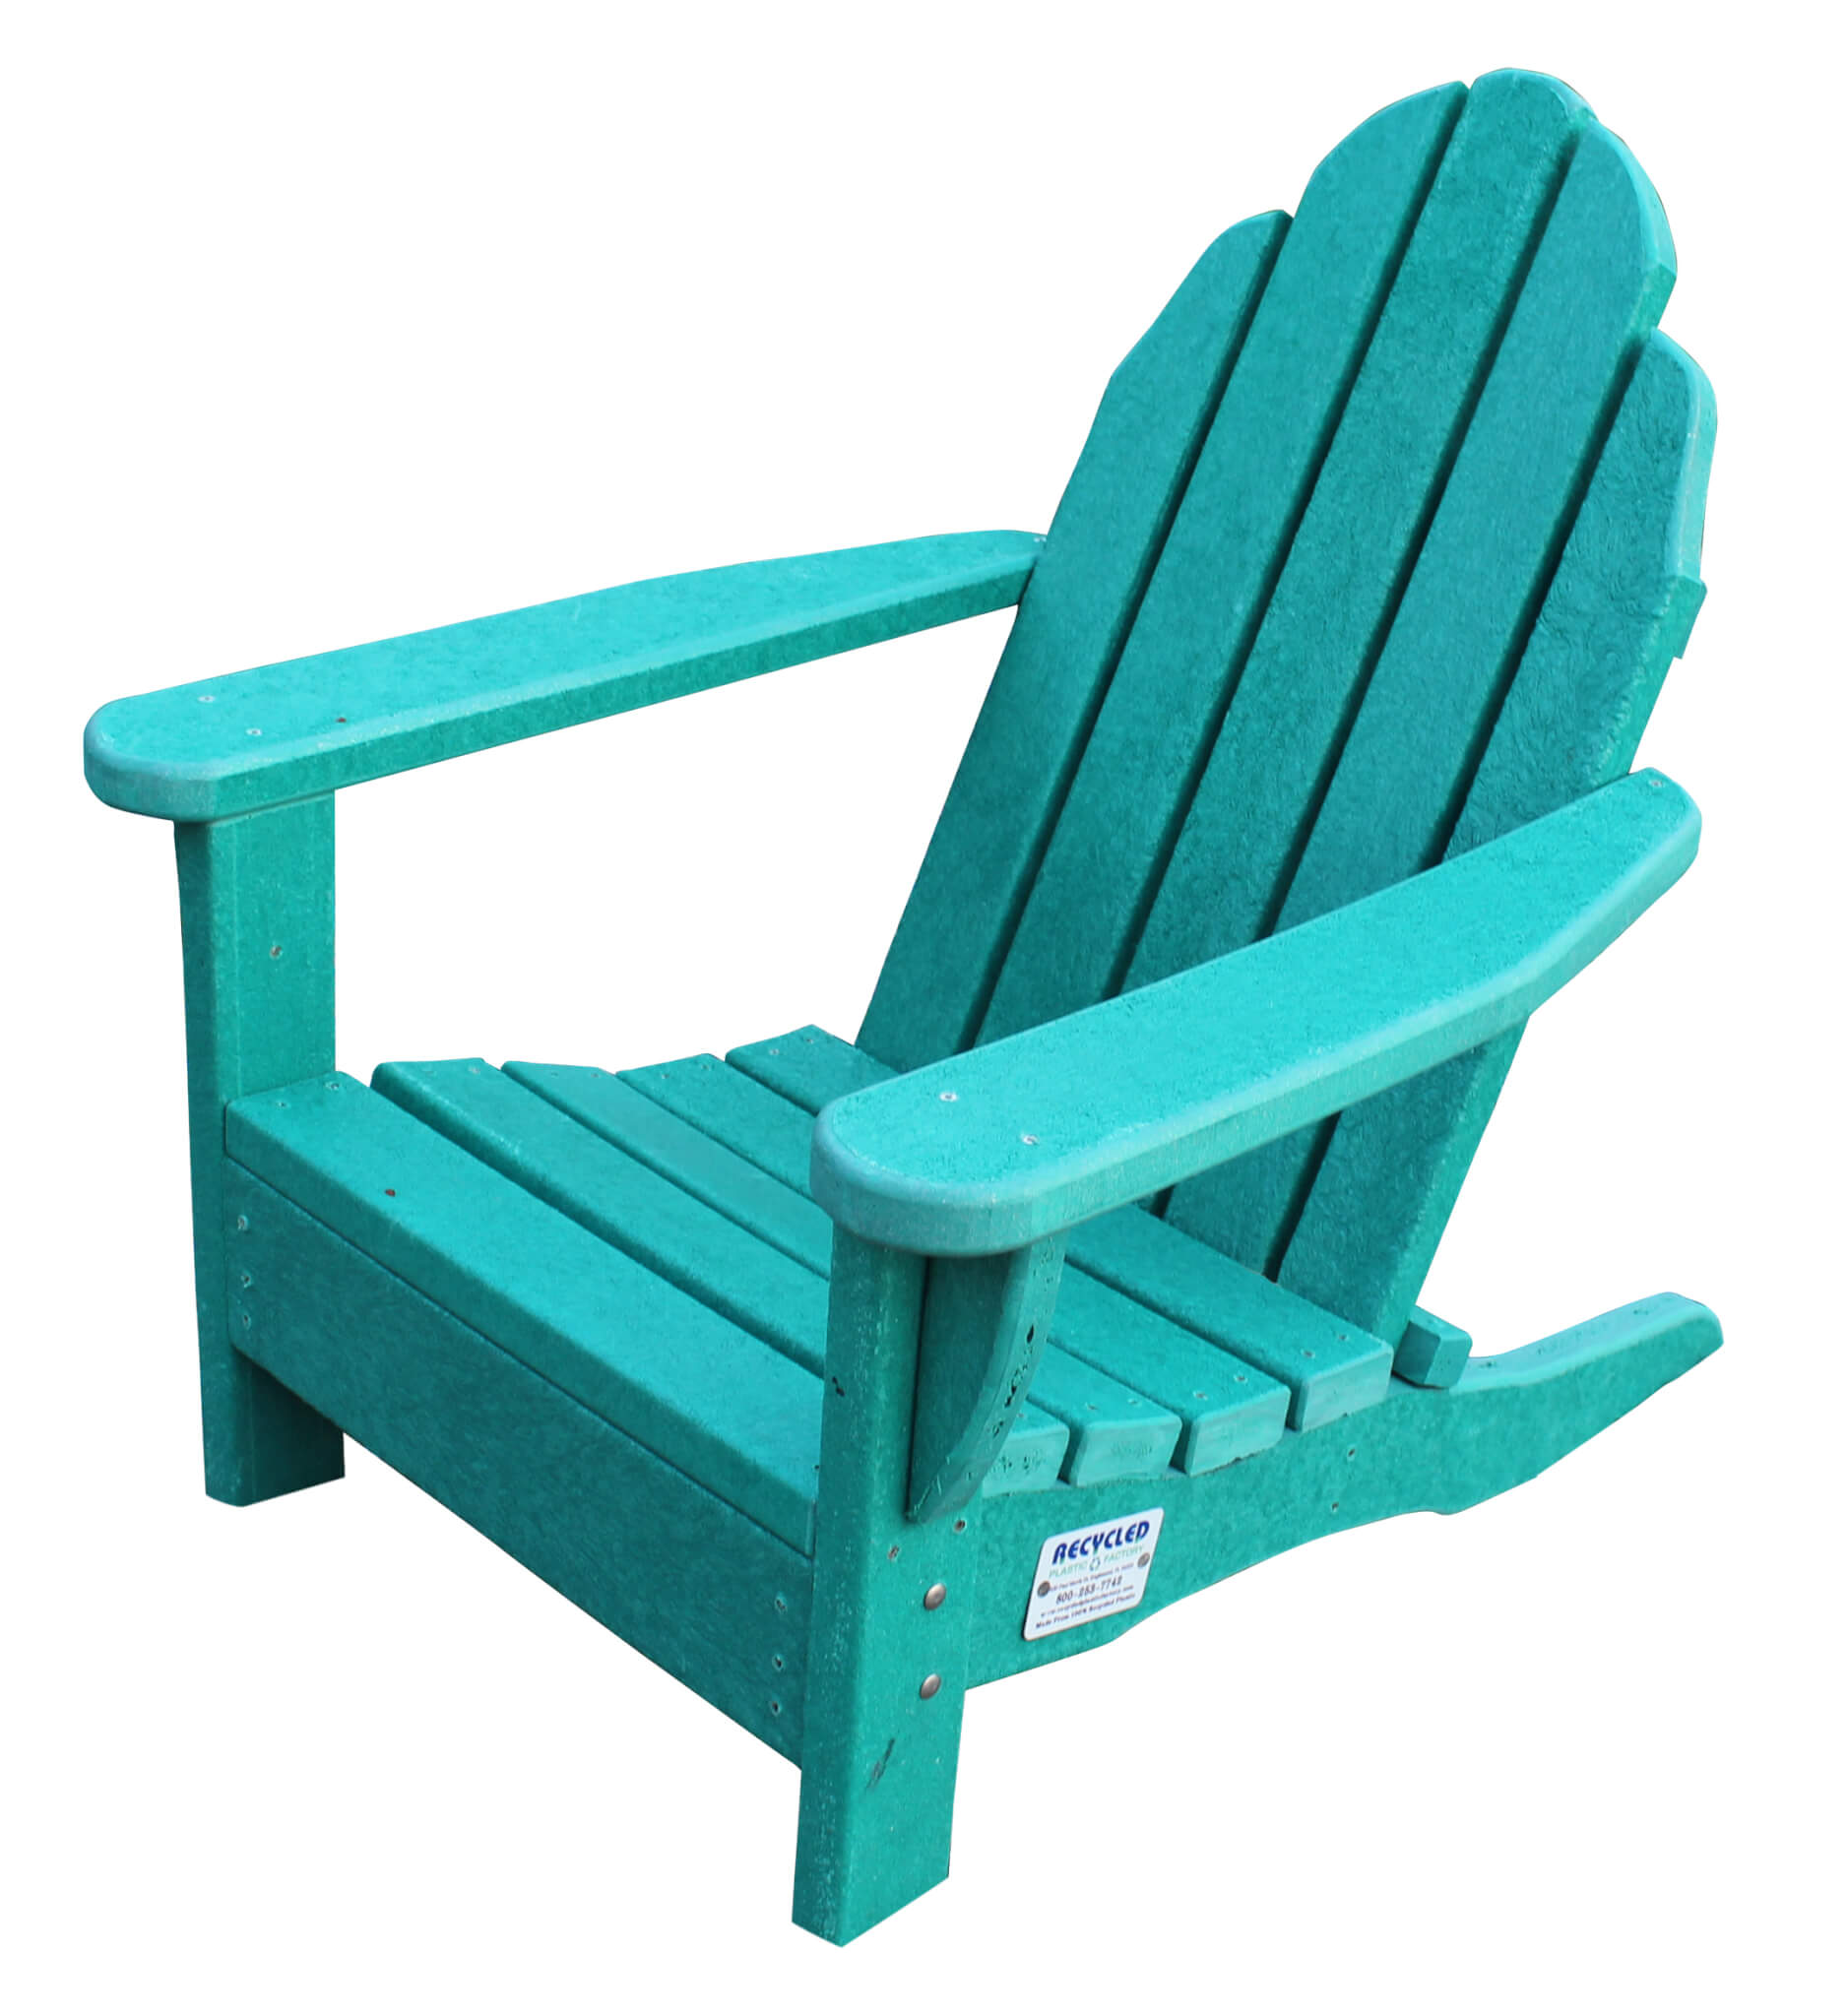 Download Wallpaper Recycled Plastic Patio Furniture Wisconsin